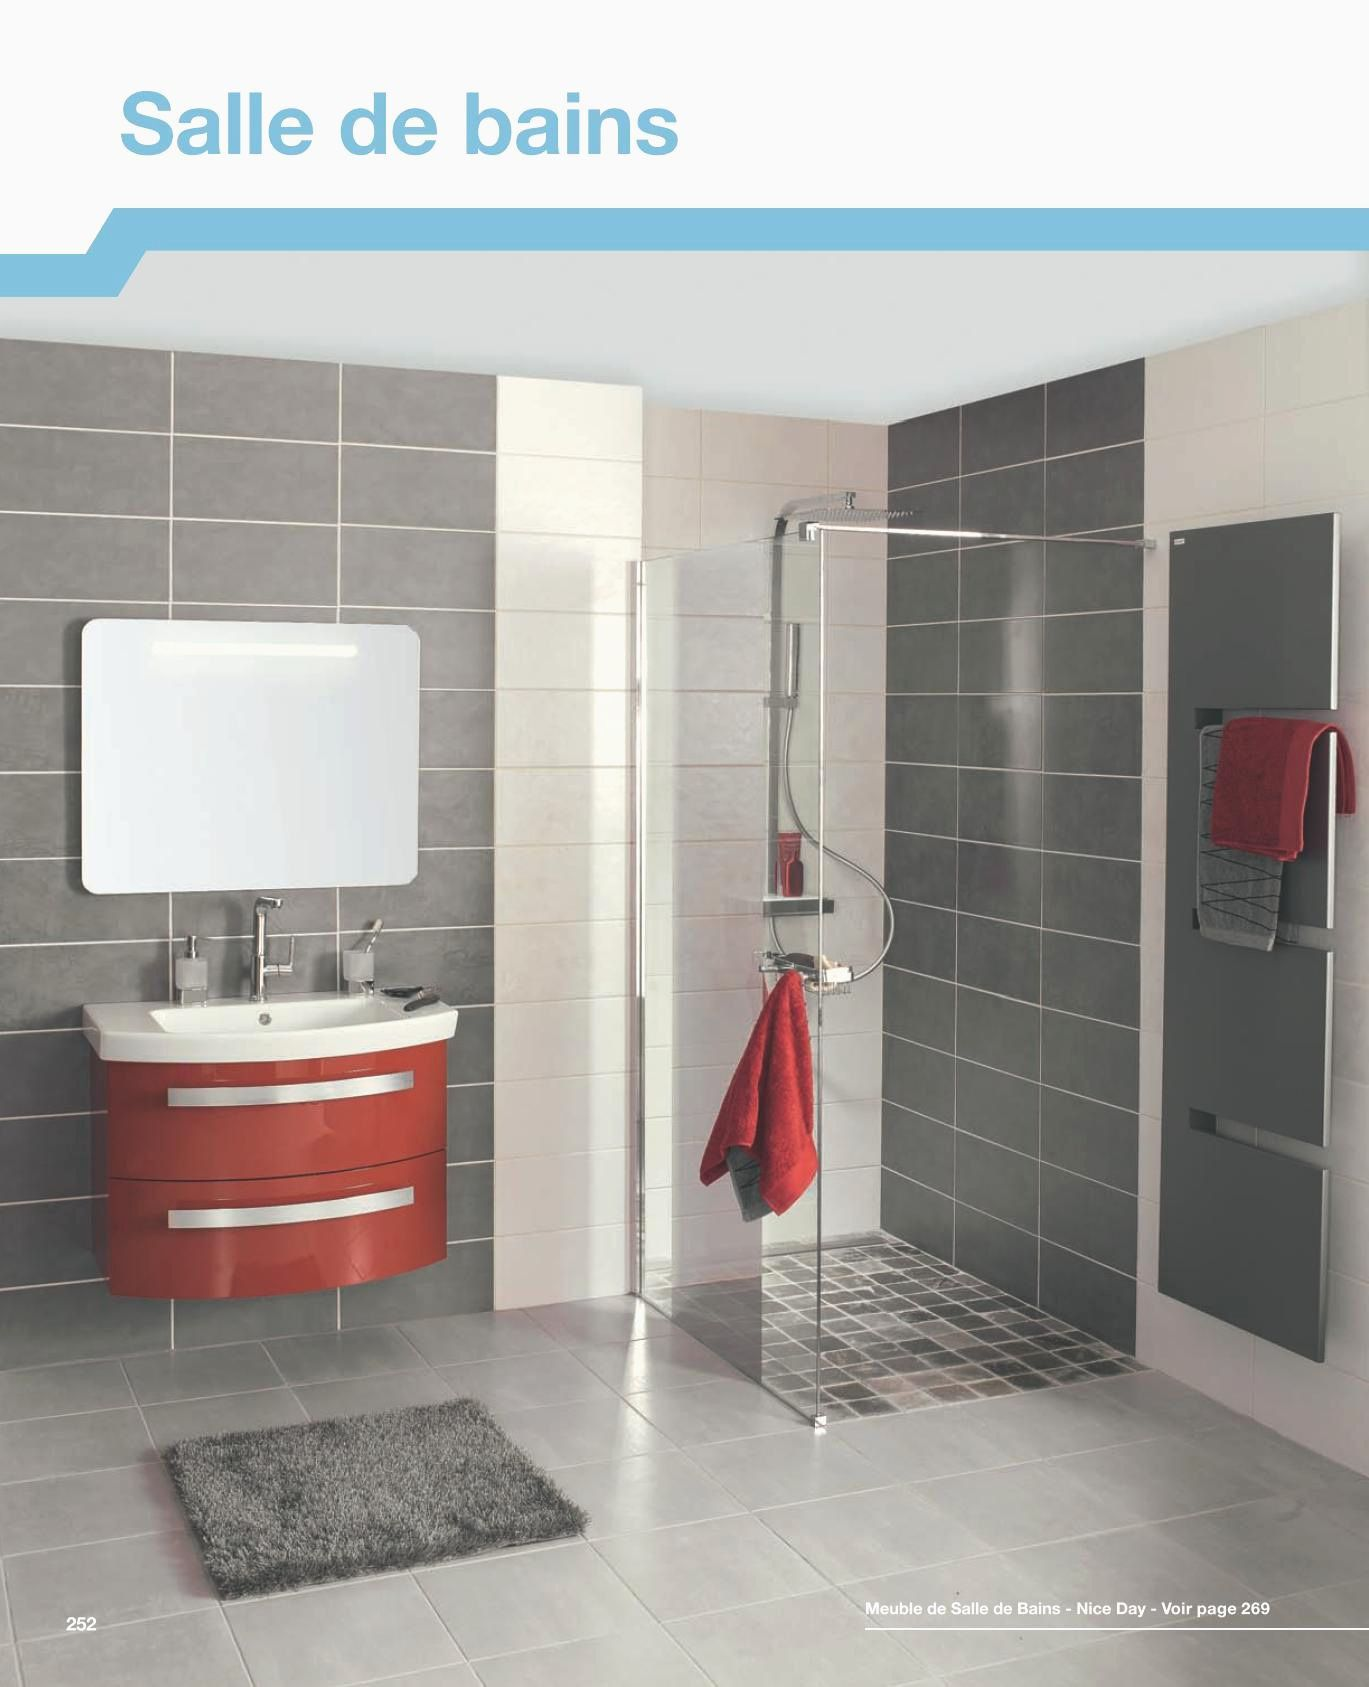 Carrelage Salle De Bain Brico Depot 19 in 19  Tile bathroom